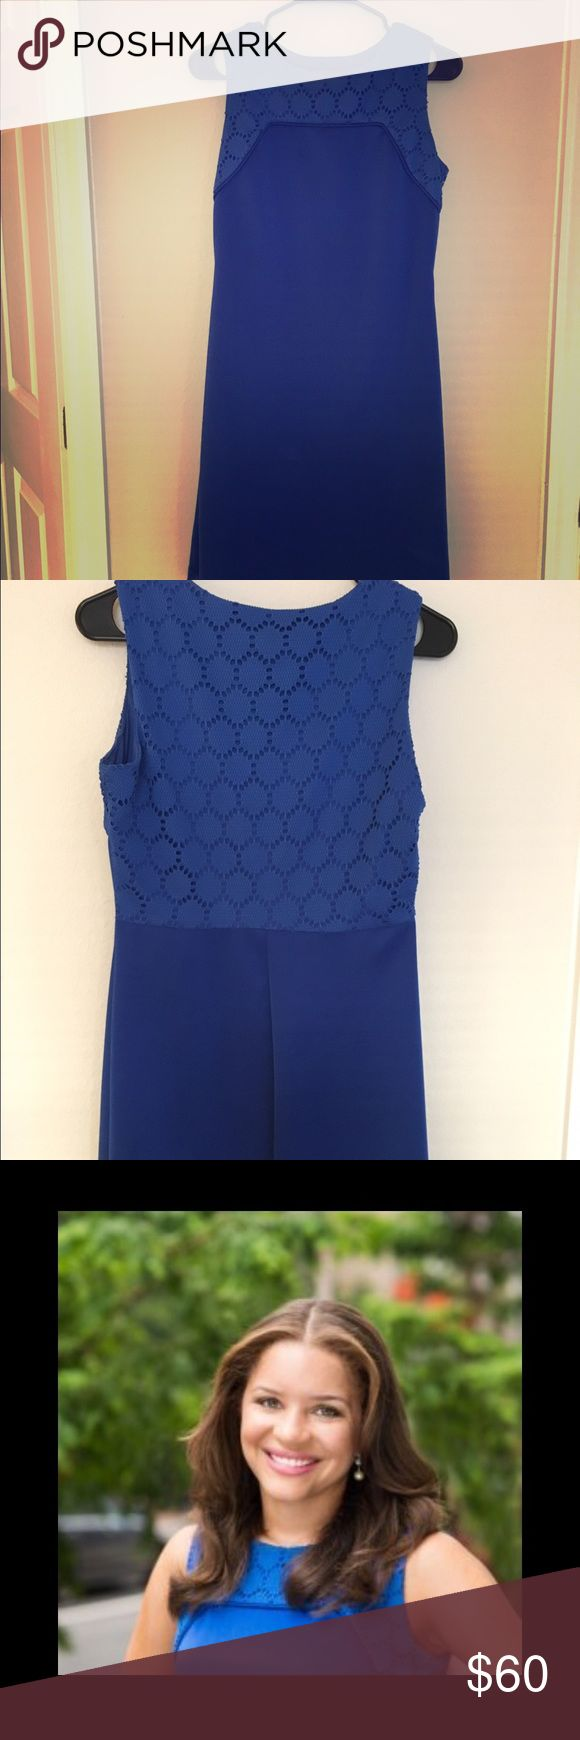 Blue Donna Ricco Shift Pretty blue shift with lace detail on the back and neckline. Wear it while taking your professional headshots (I did)! The color looks great on everyone. Donna Ricco Dresses